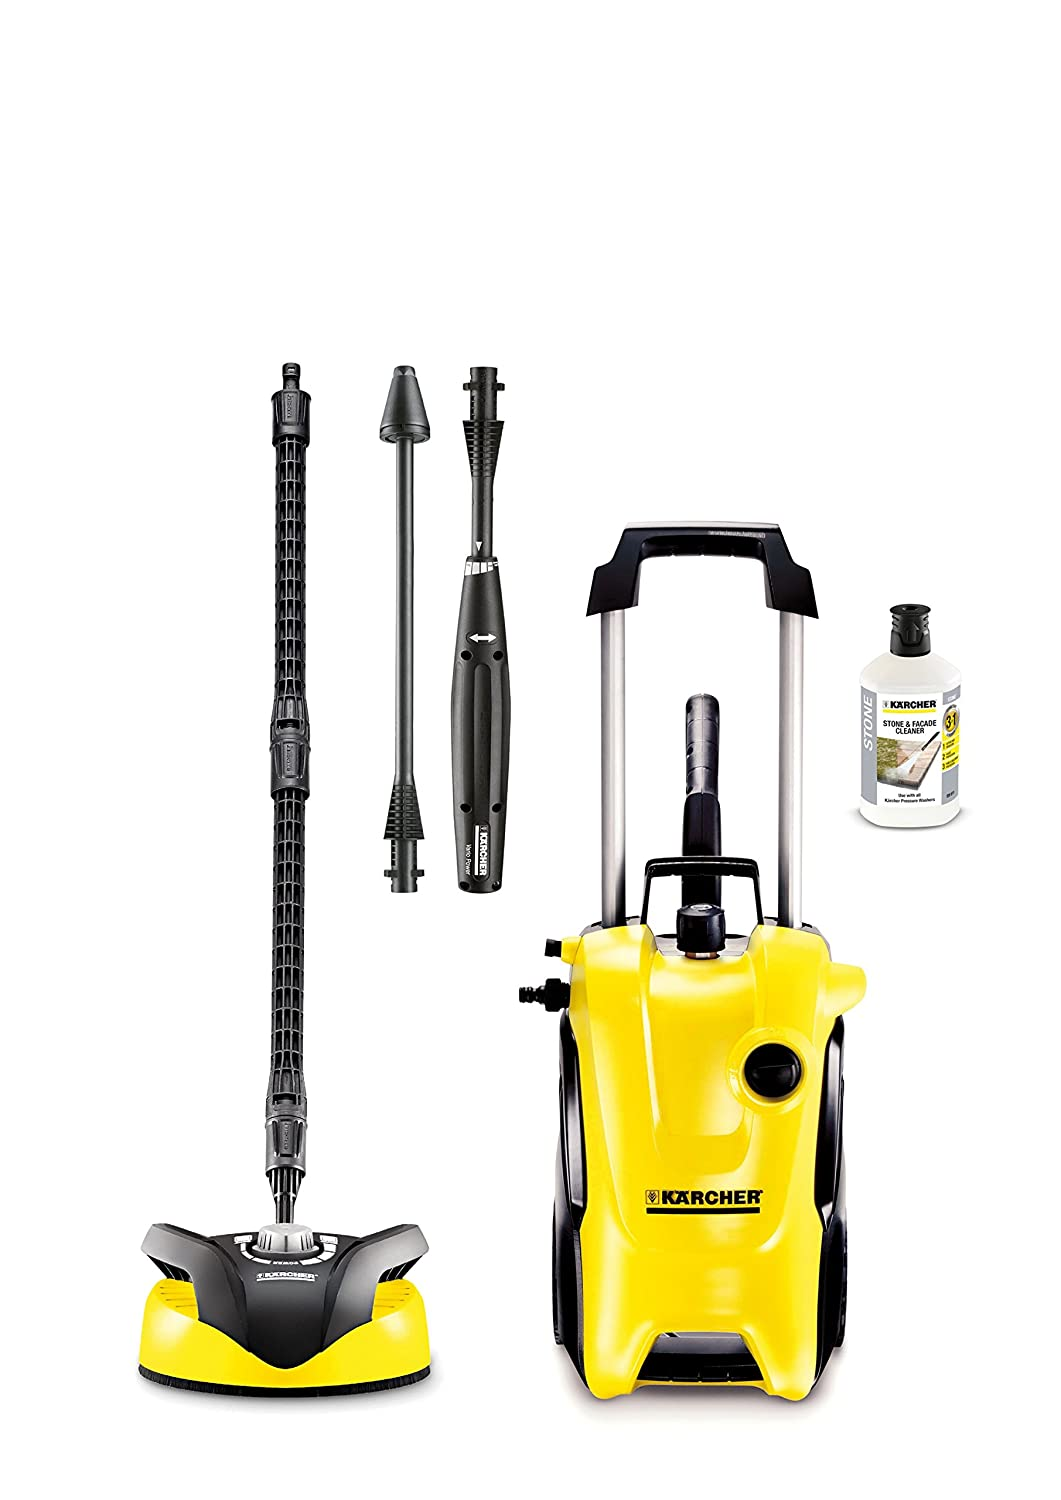 Best Pressure Washer 2016 Top 7 Pressure Washer Reviews